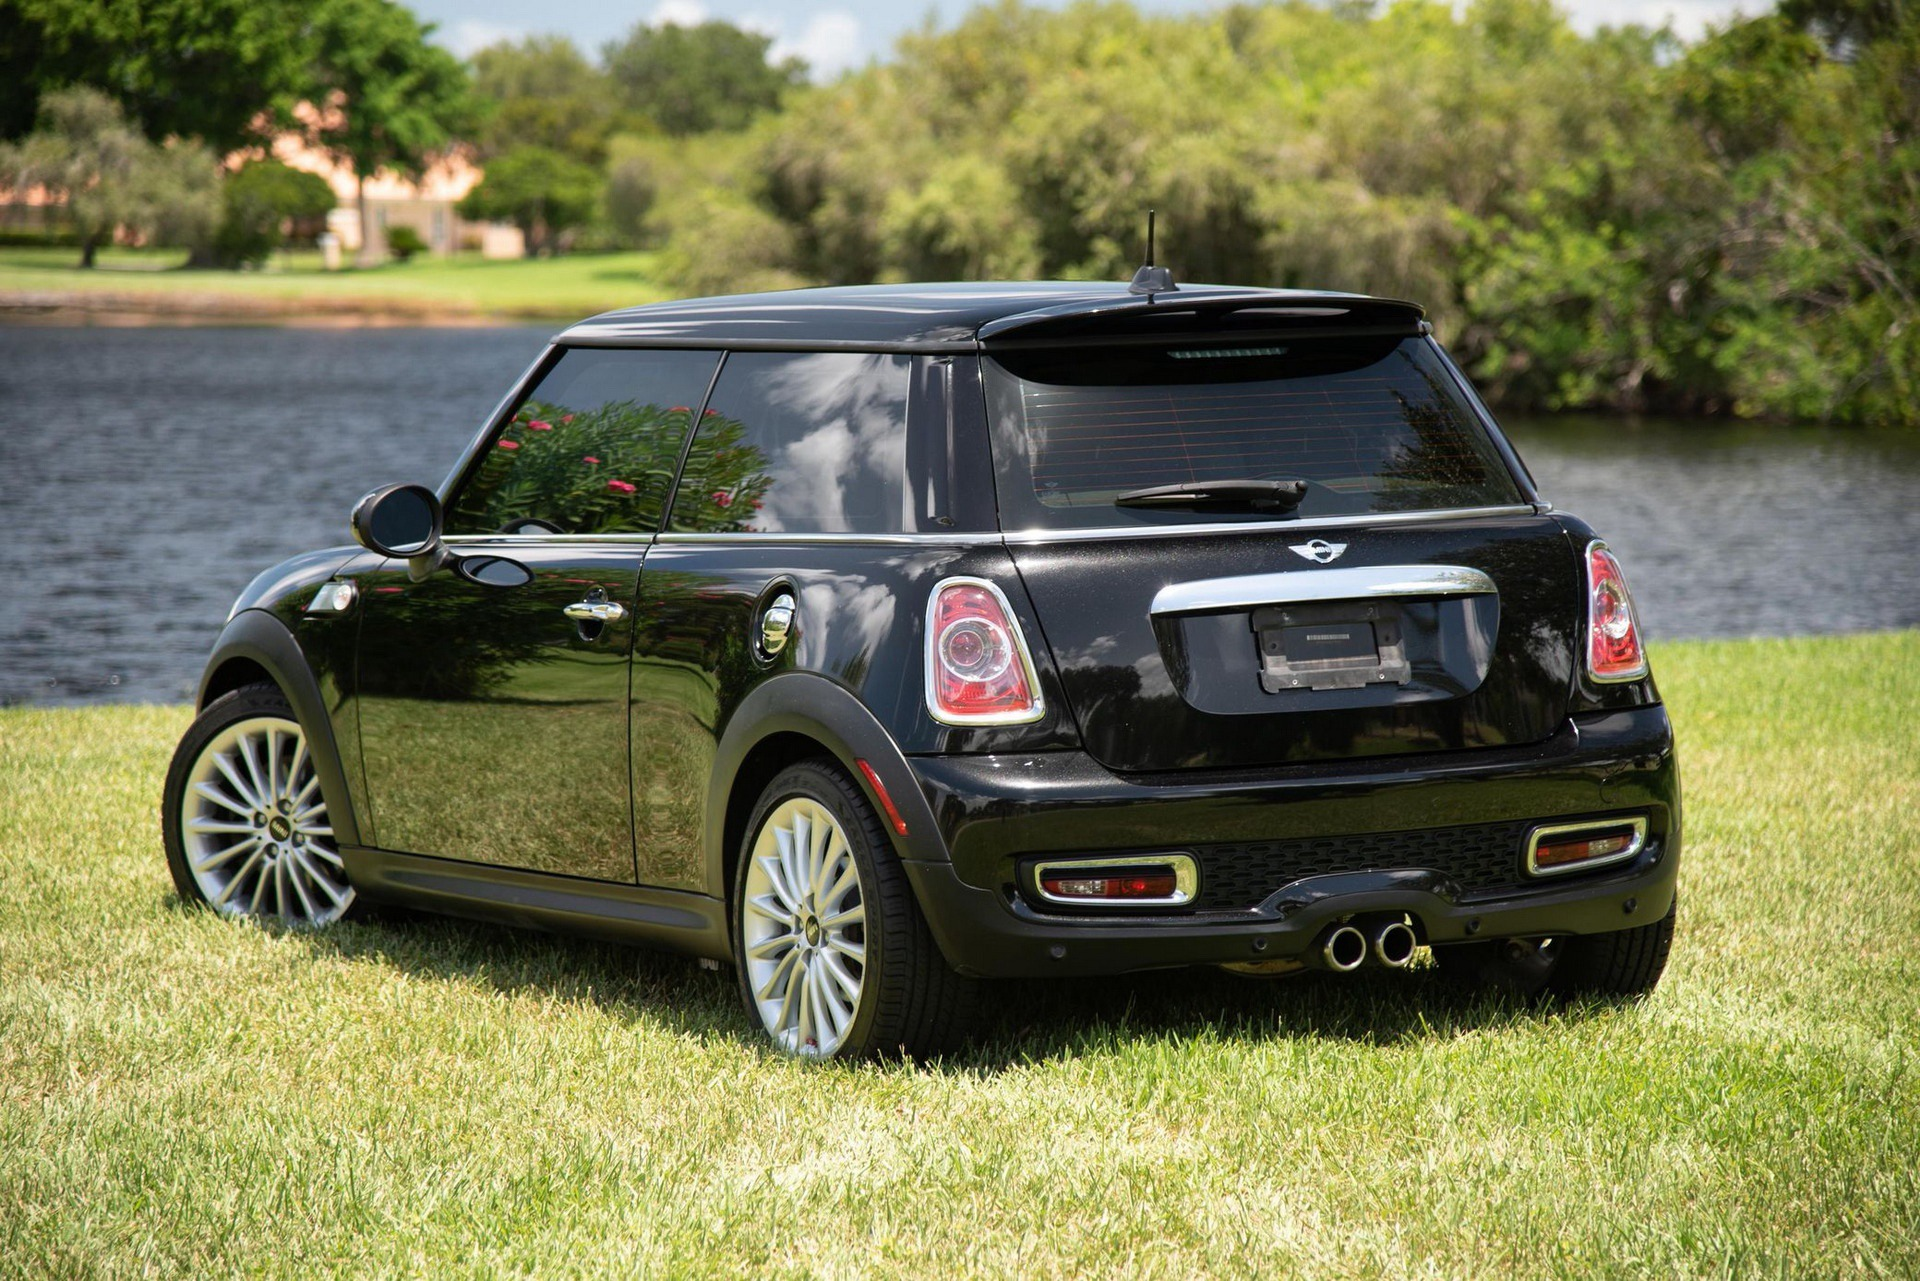 Mini_Cooper_S_Inspired_by_Goodwood-0005